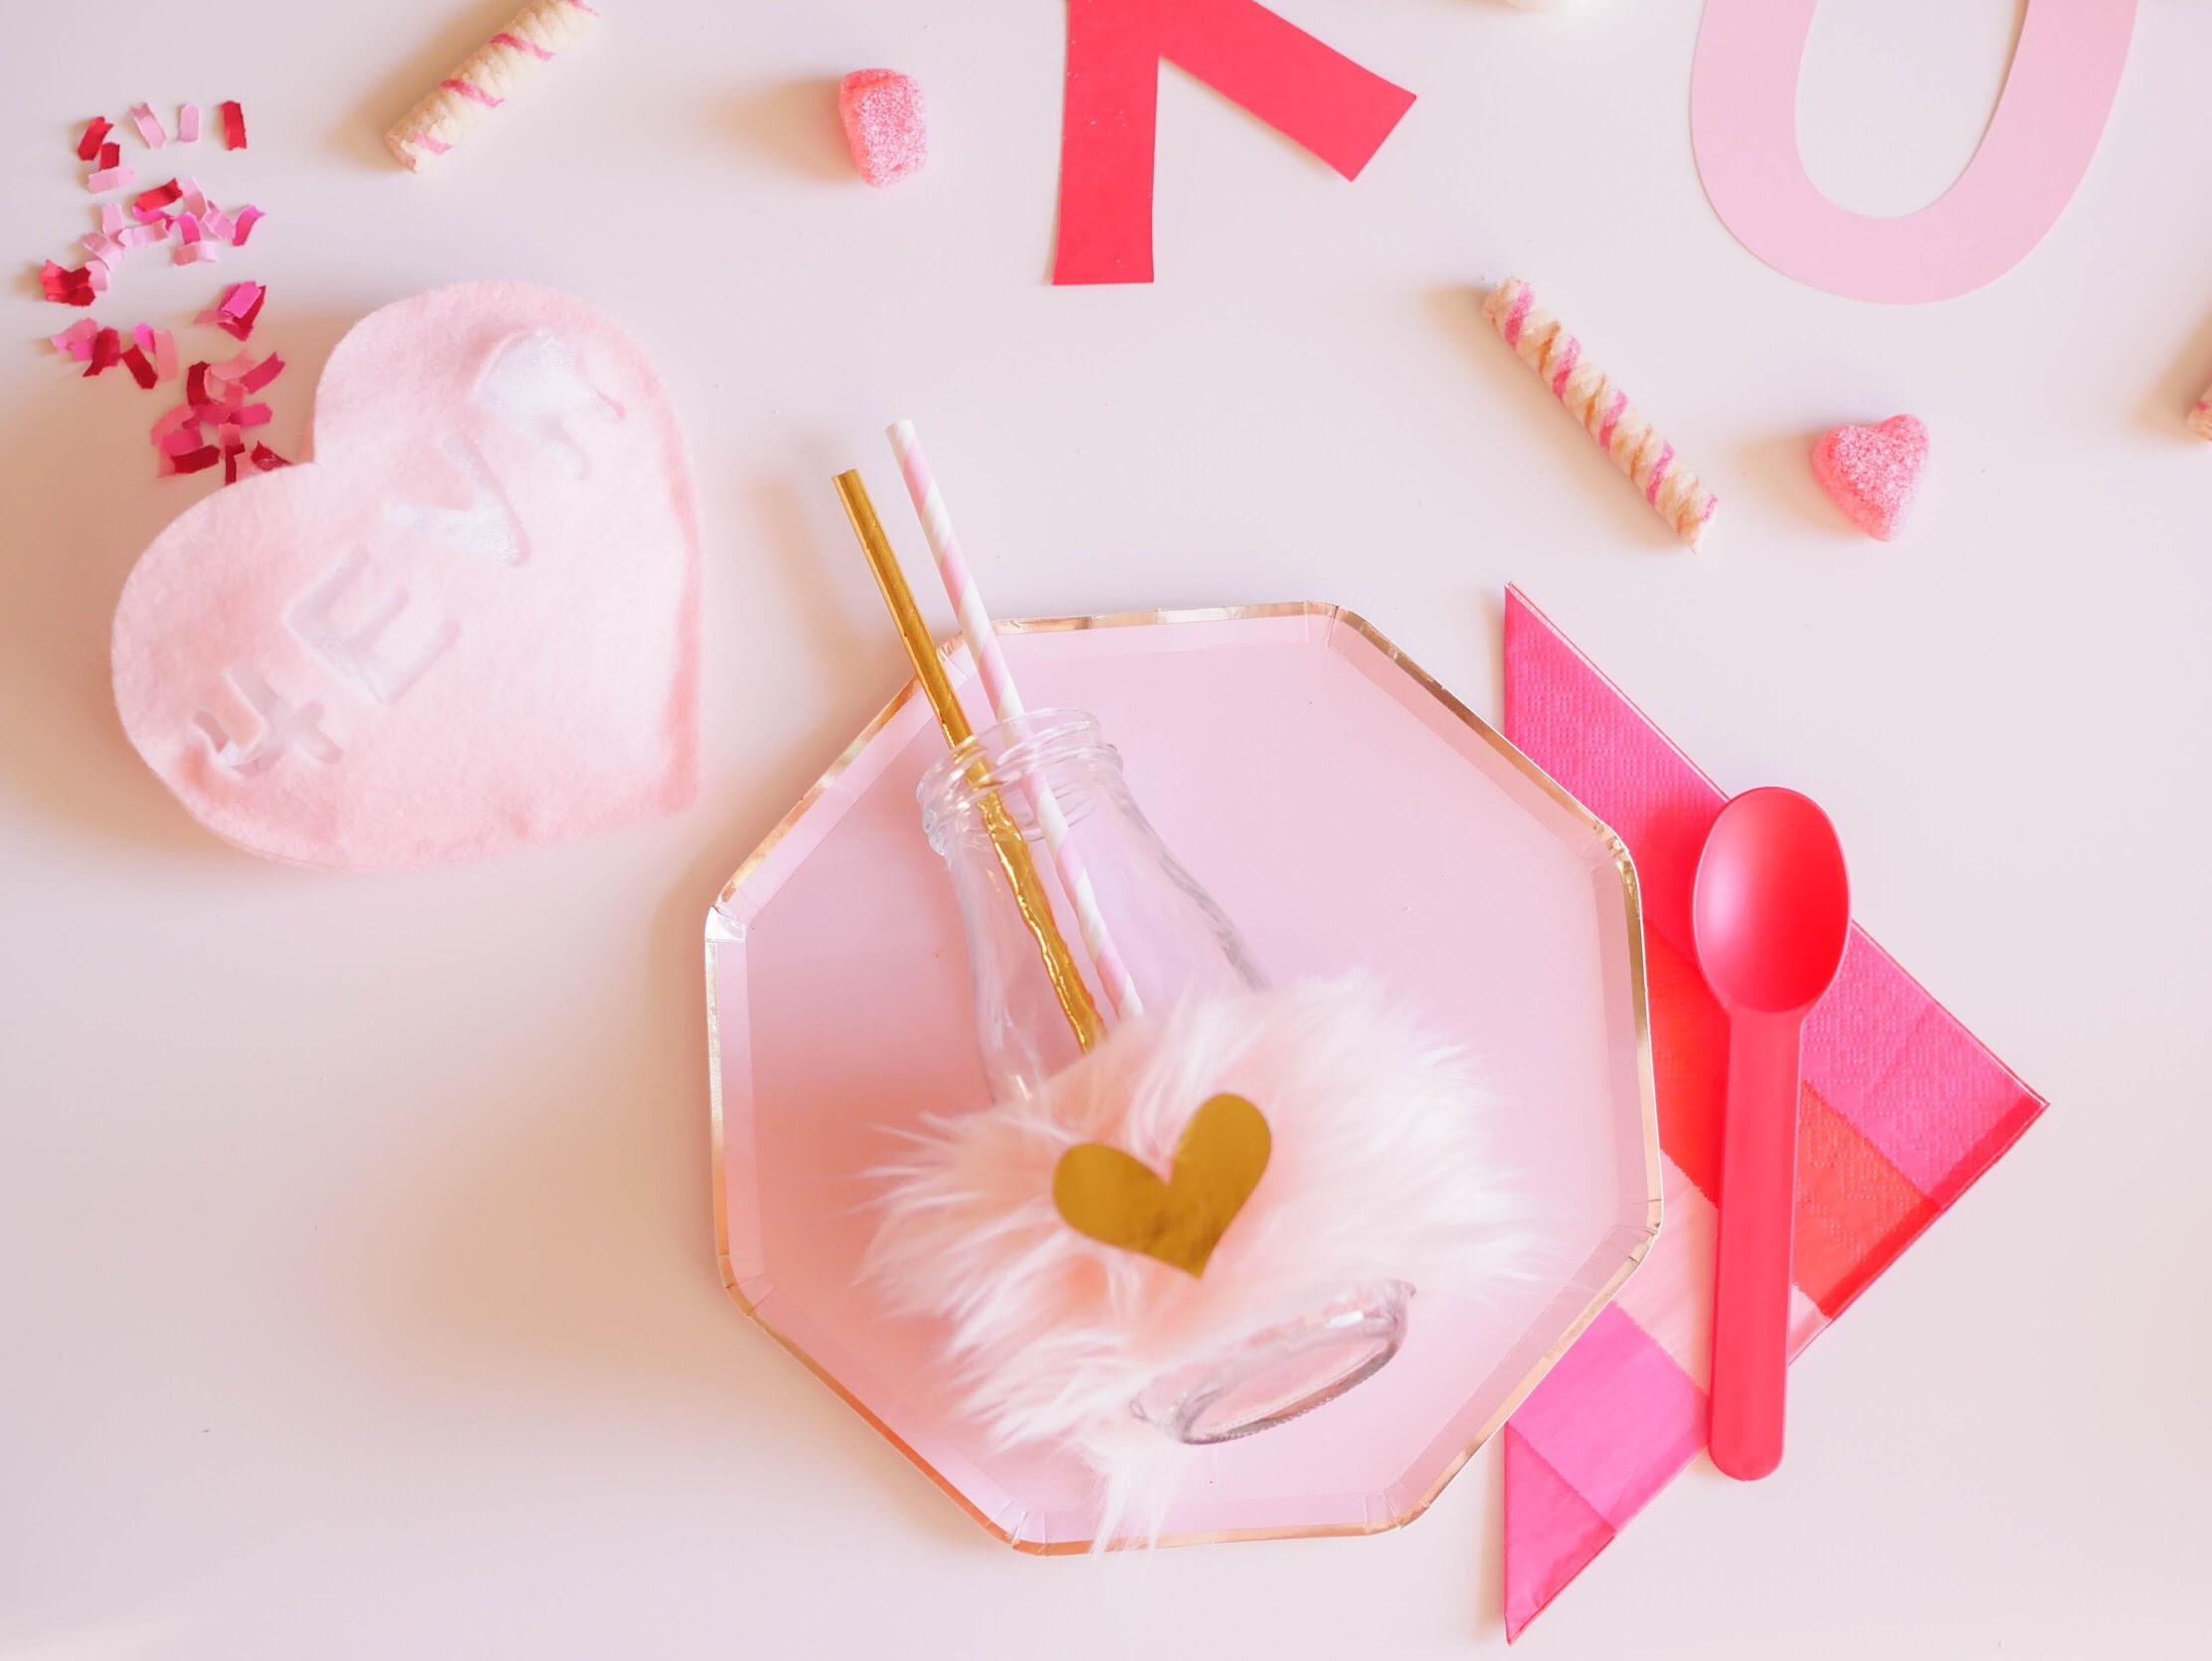 This perfectly pink Valentine's Day party is so over the top! I love it!